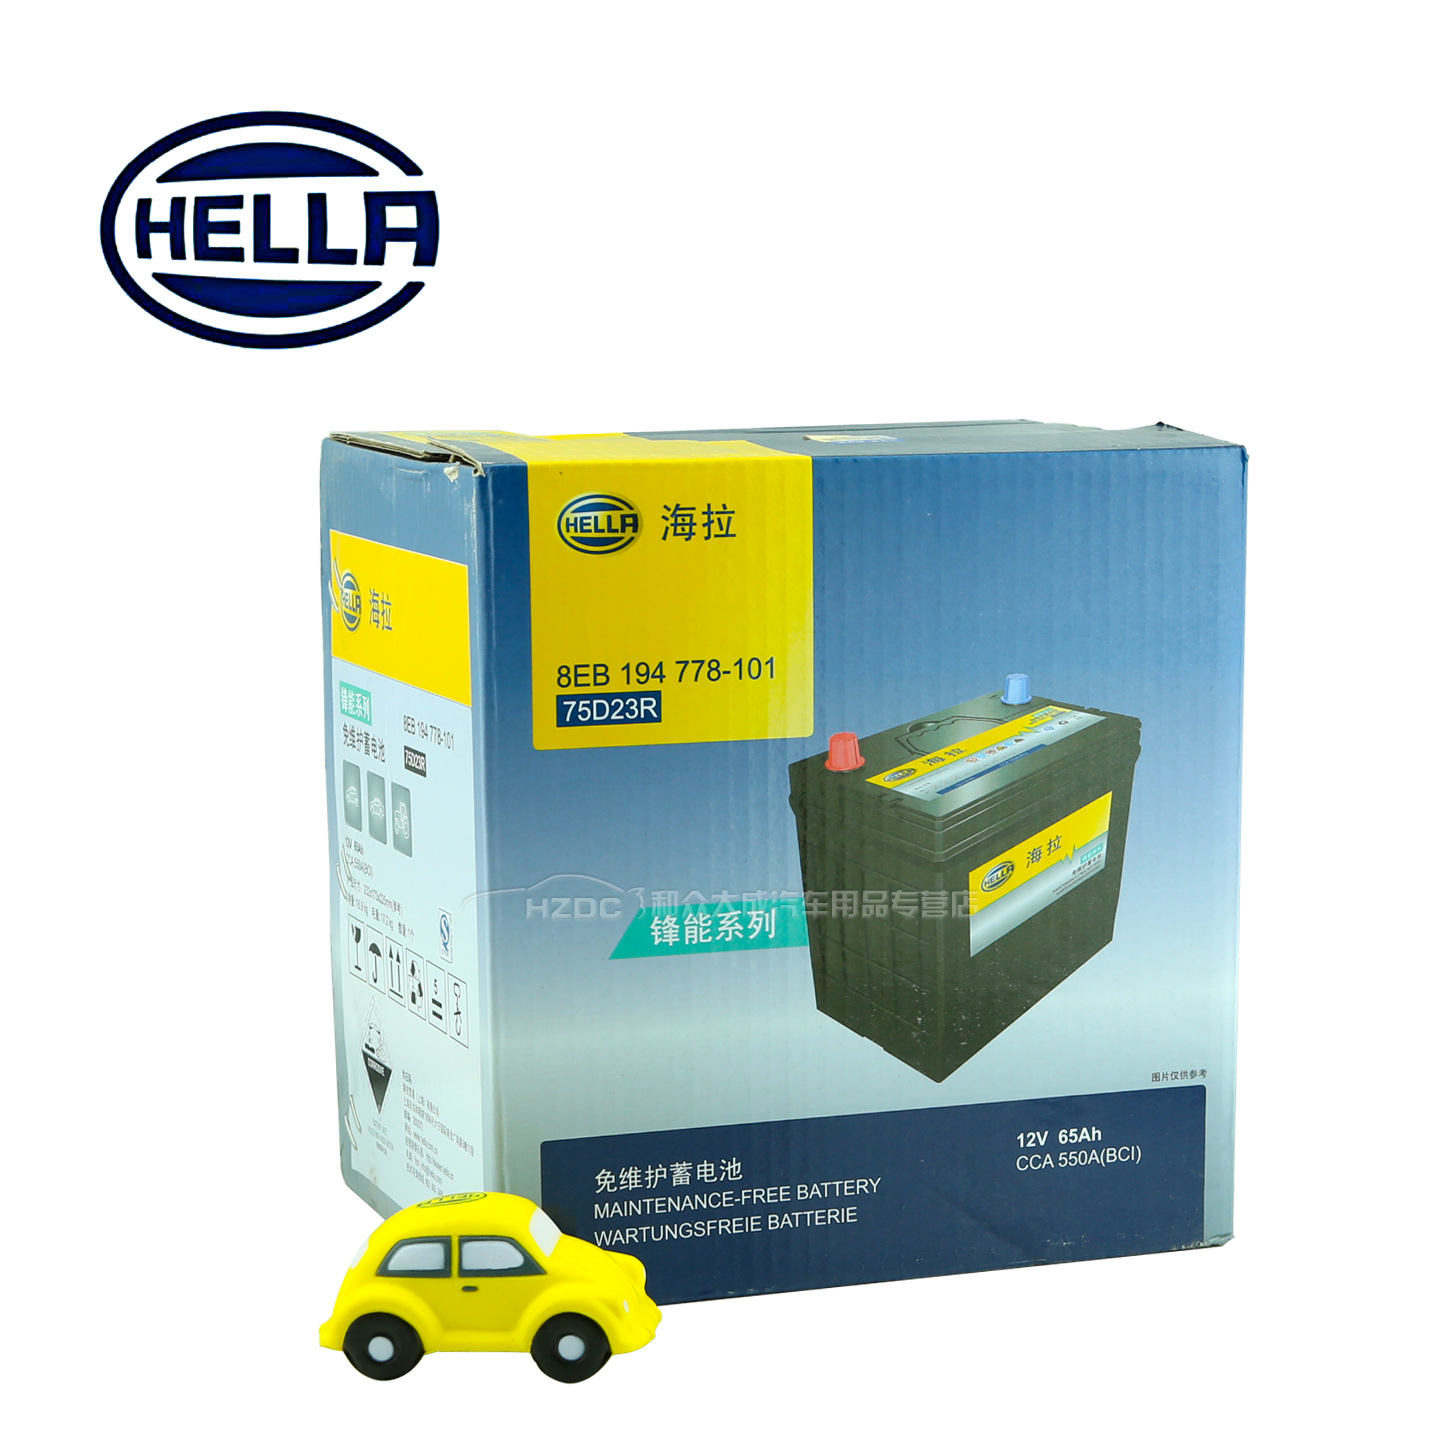 Hella hella front can series 75D23R battery maintenance-free battery 101 subaru legacy outback